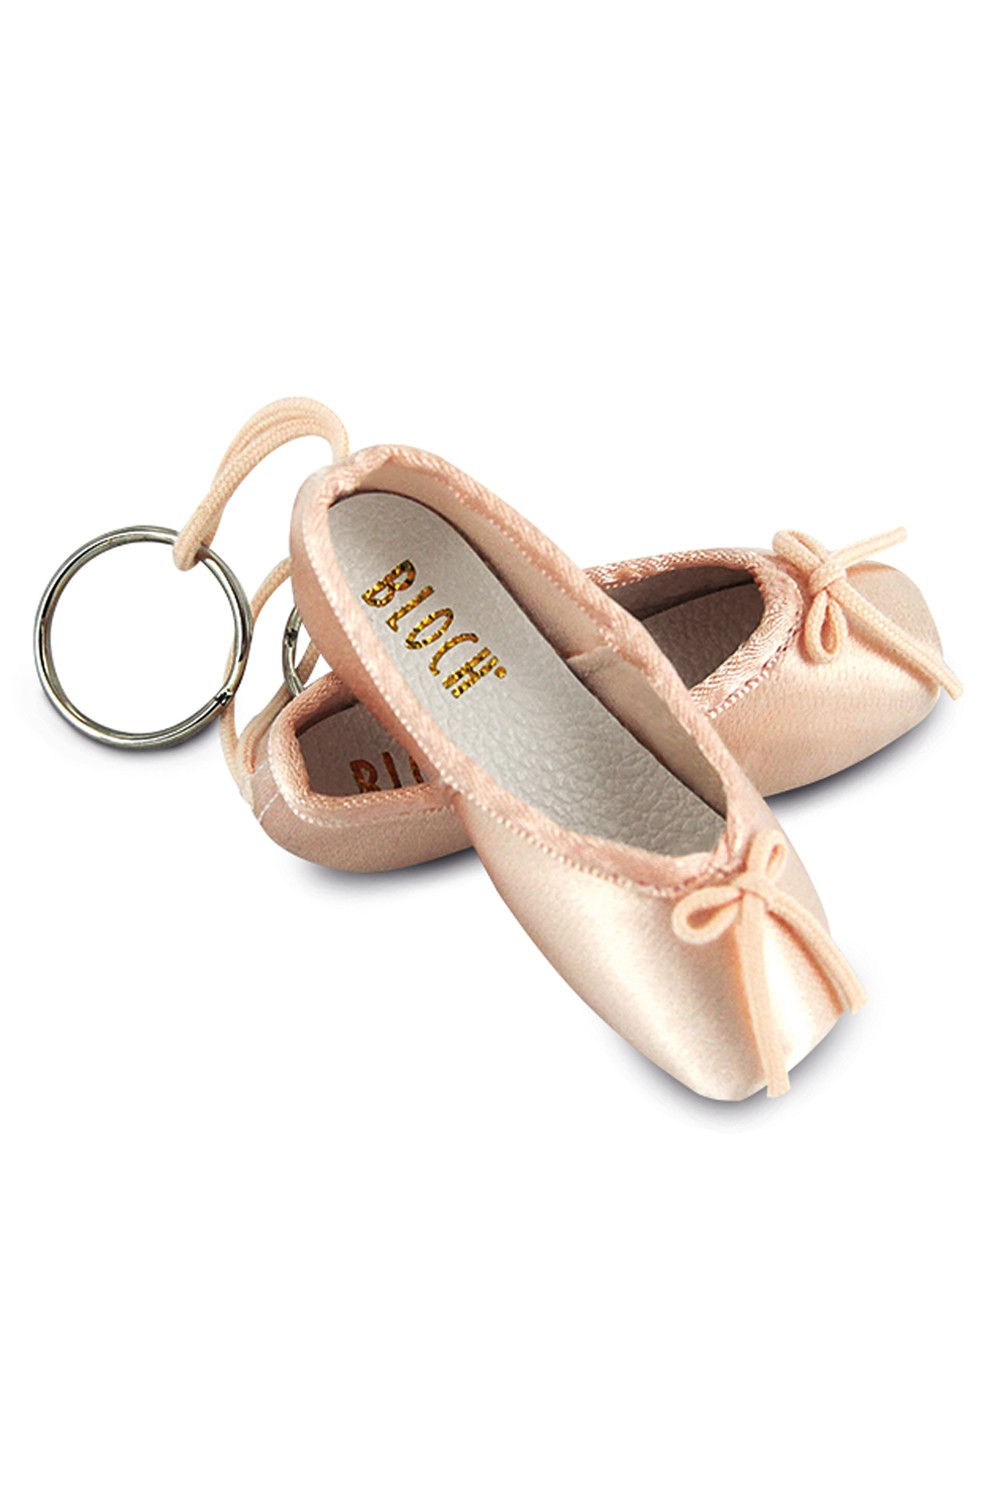 Llavero Mini Zapatilla De Punta Dance Shoes Accessories